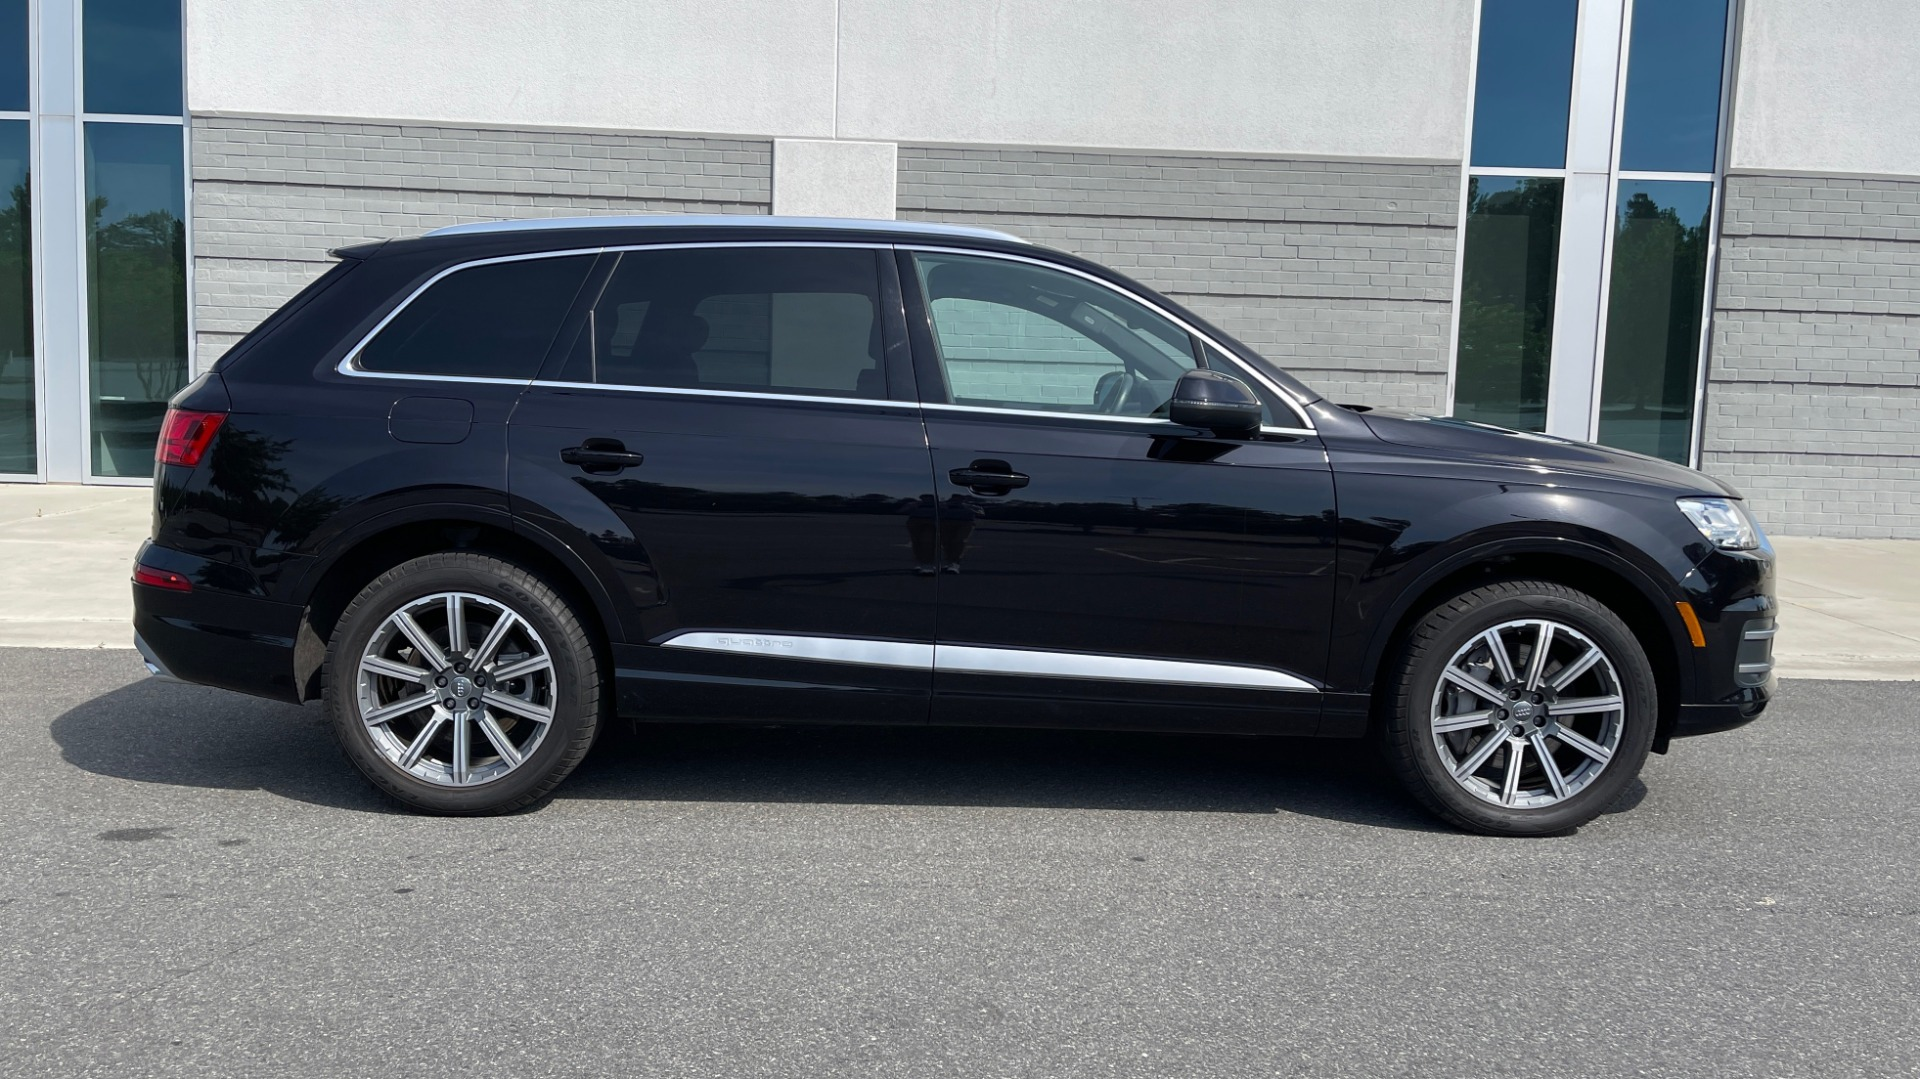 Used 2018 Audi Q7 PREMIUM PLUS / NAV / PANO-ROOF / BOSE / 3-ROW / REARVIEW for sale $43,461 at Formula Imports in Charlotte NC 28227 7